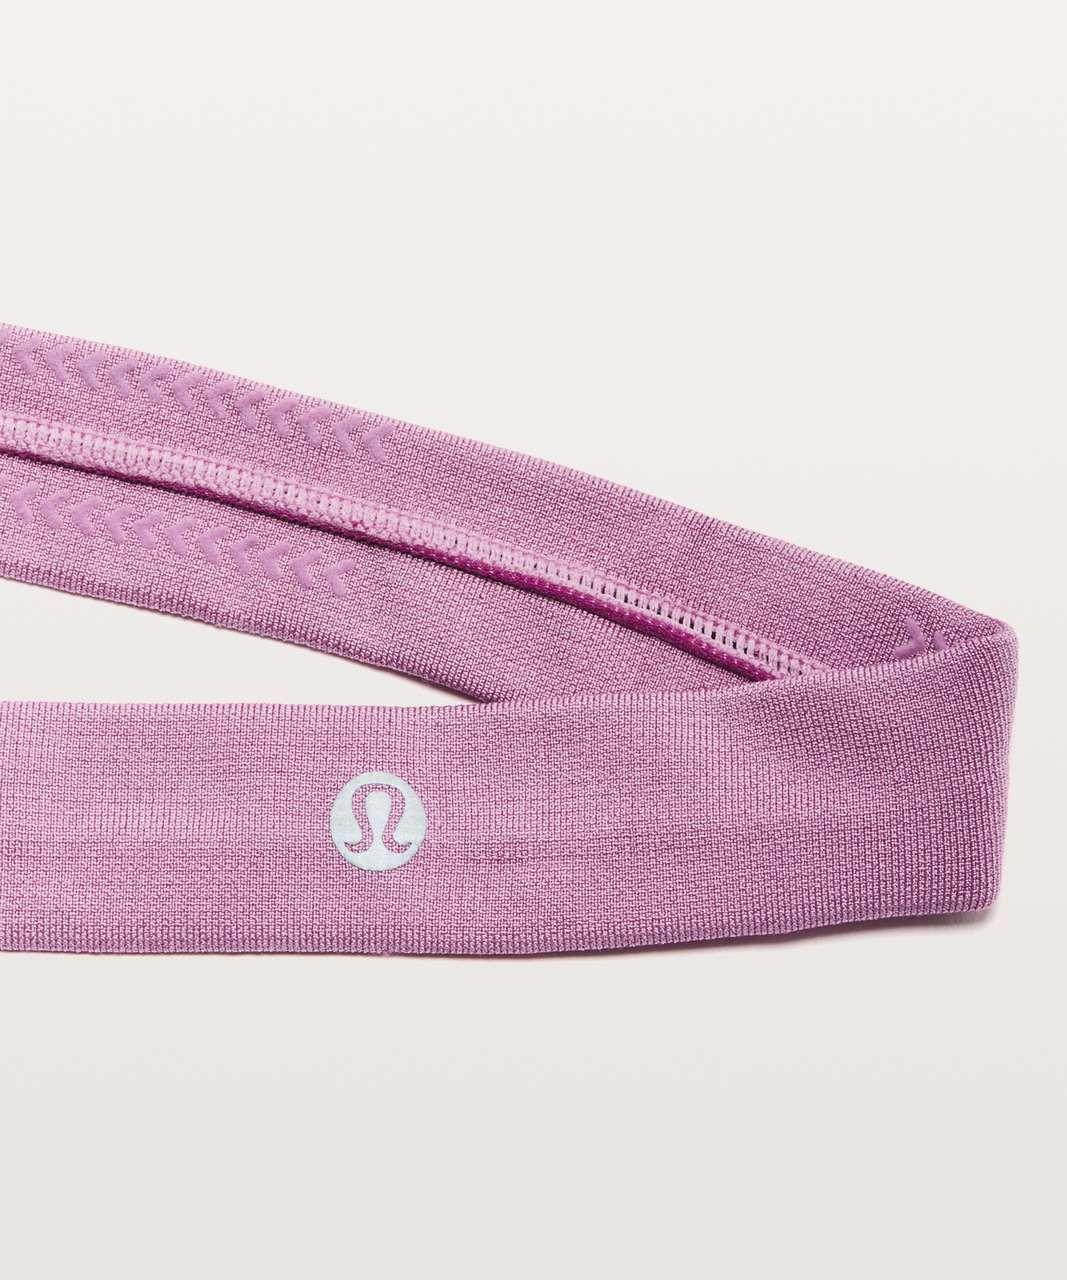 Lululemon Cardio Cross Trainer Headband - Hyacinth / Hyacinth